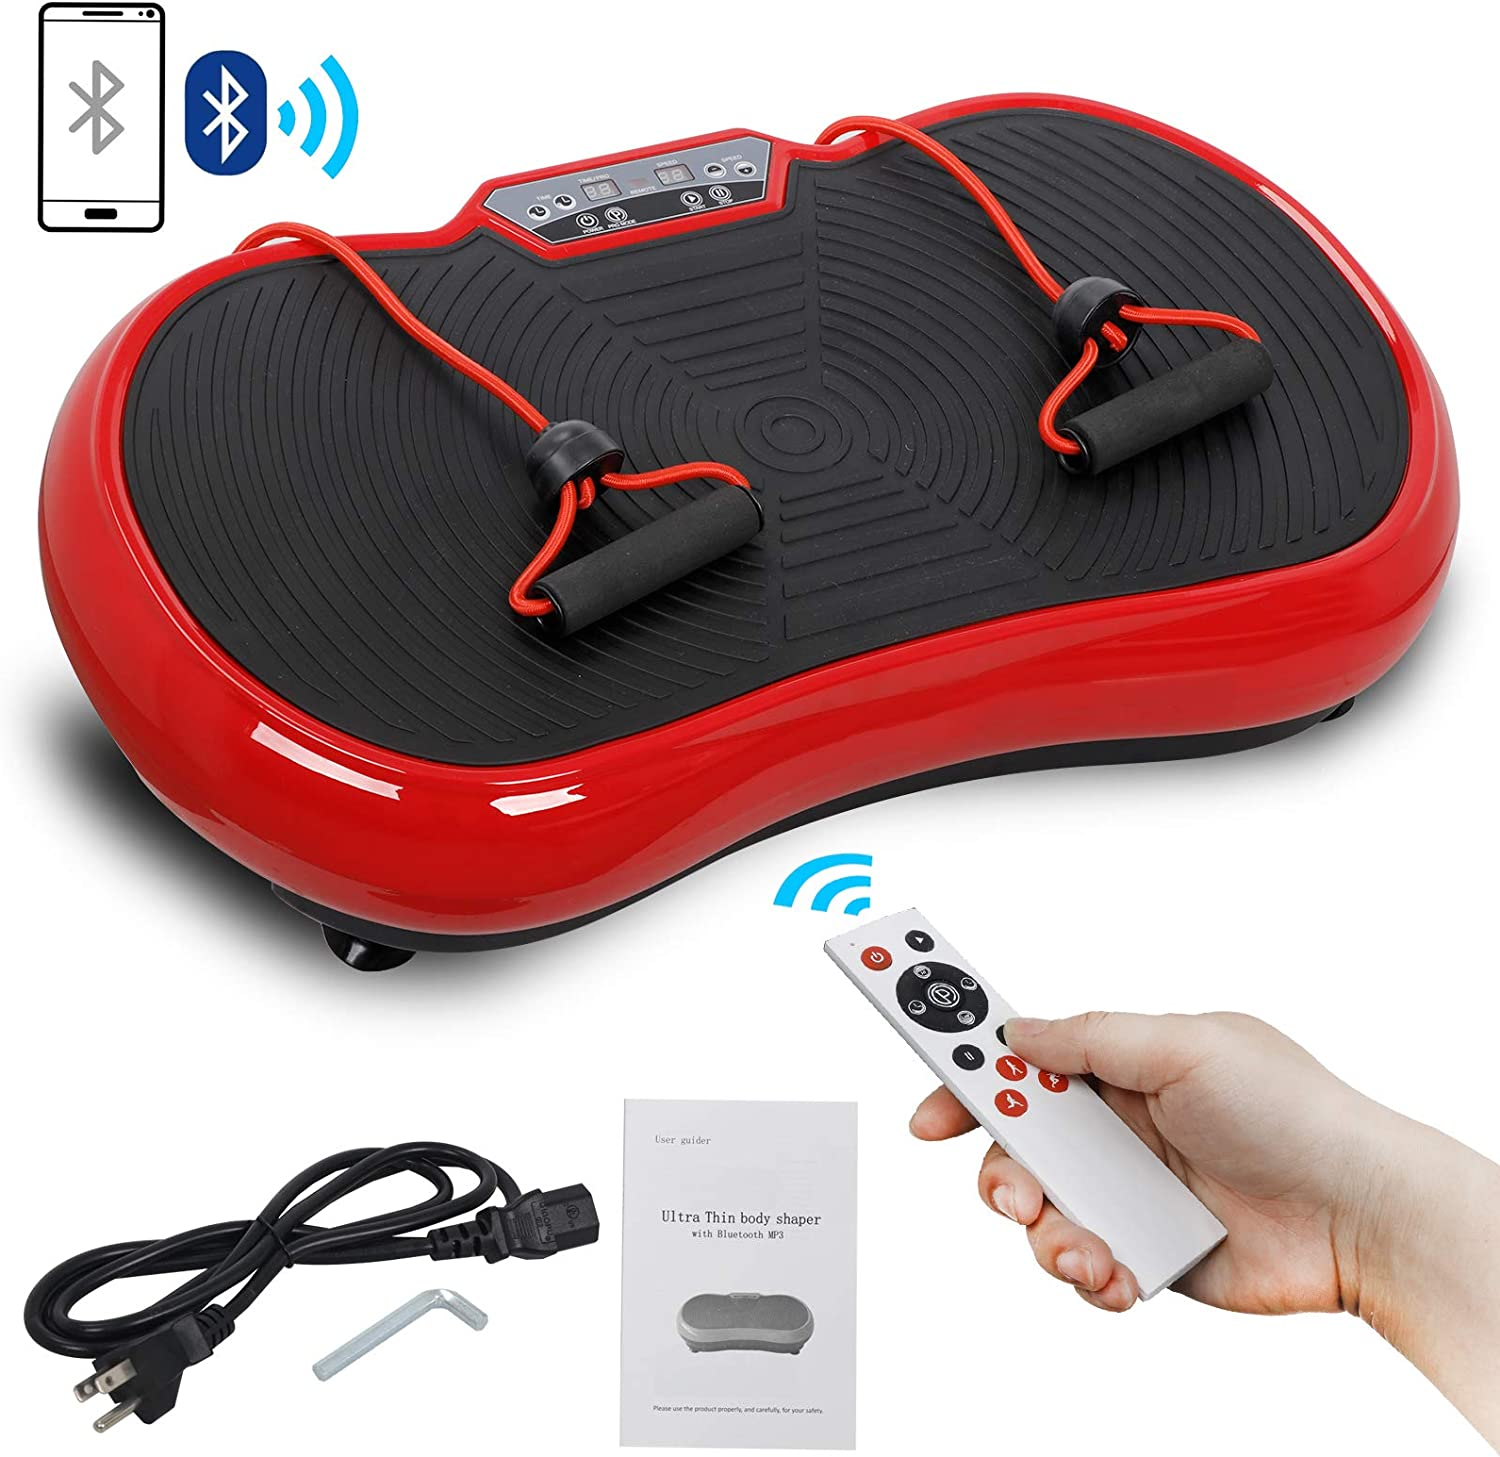 SUPER DEAL Pro Vibration Inexpensive Plate Exercise Body Whole - Machine Wor Cheap sale